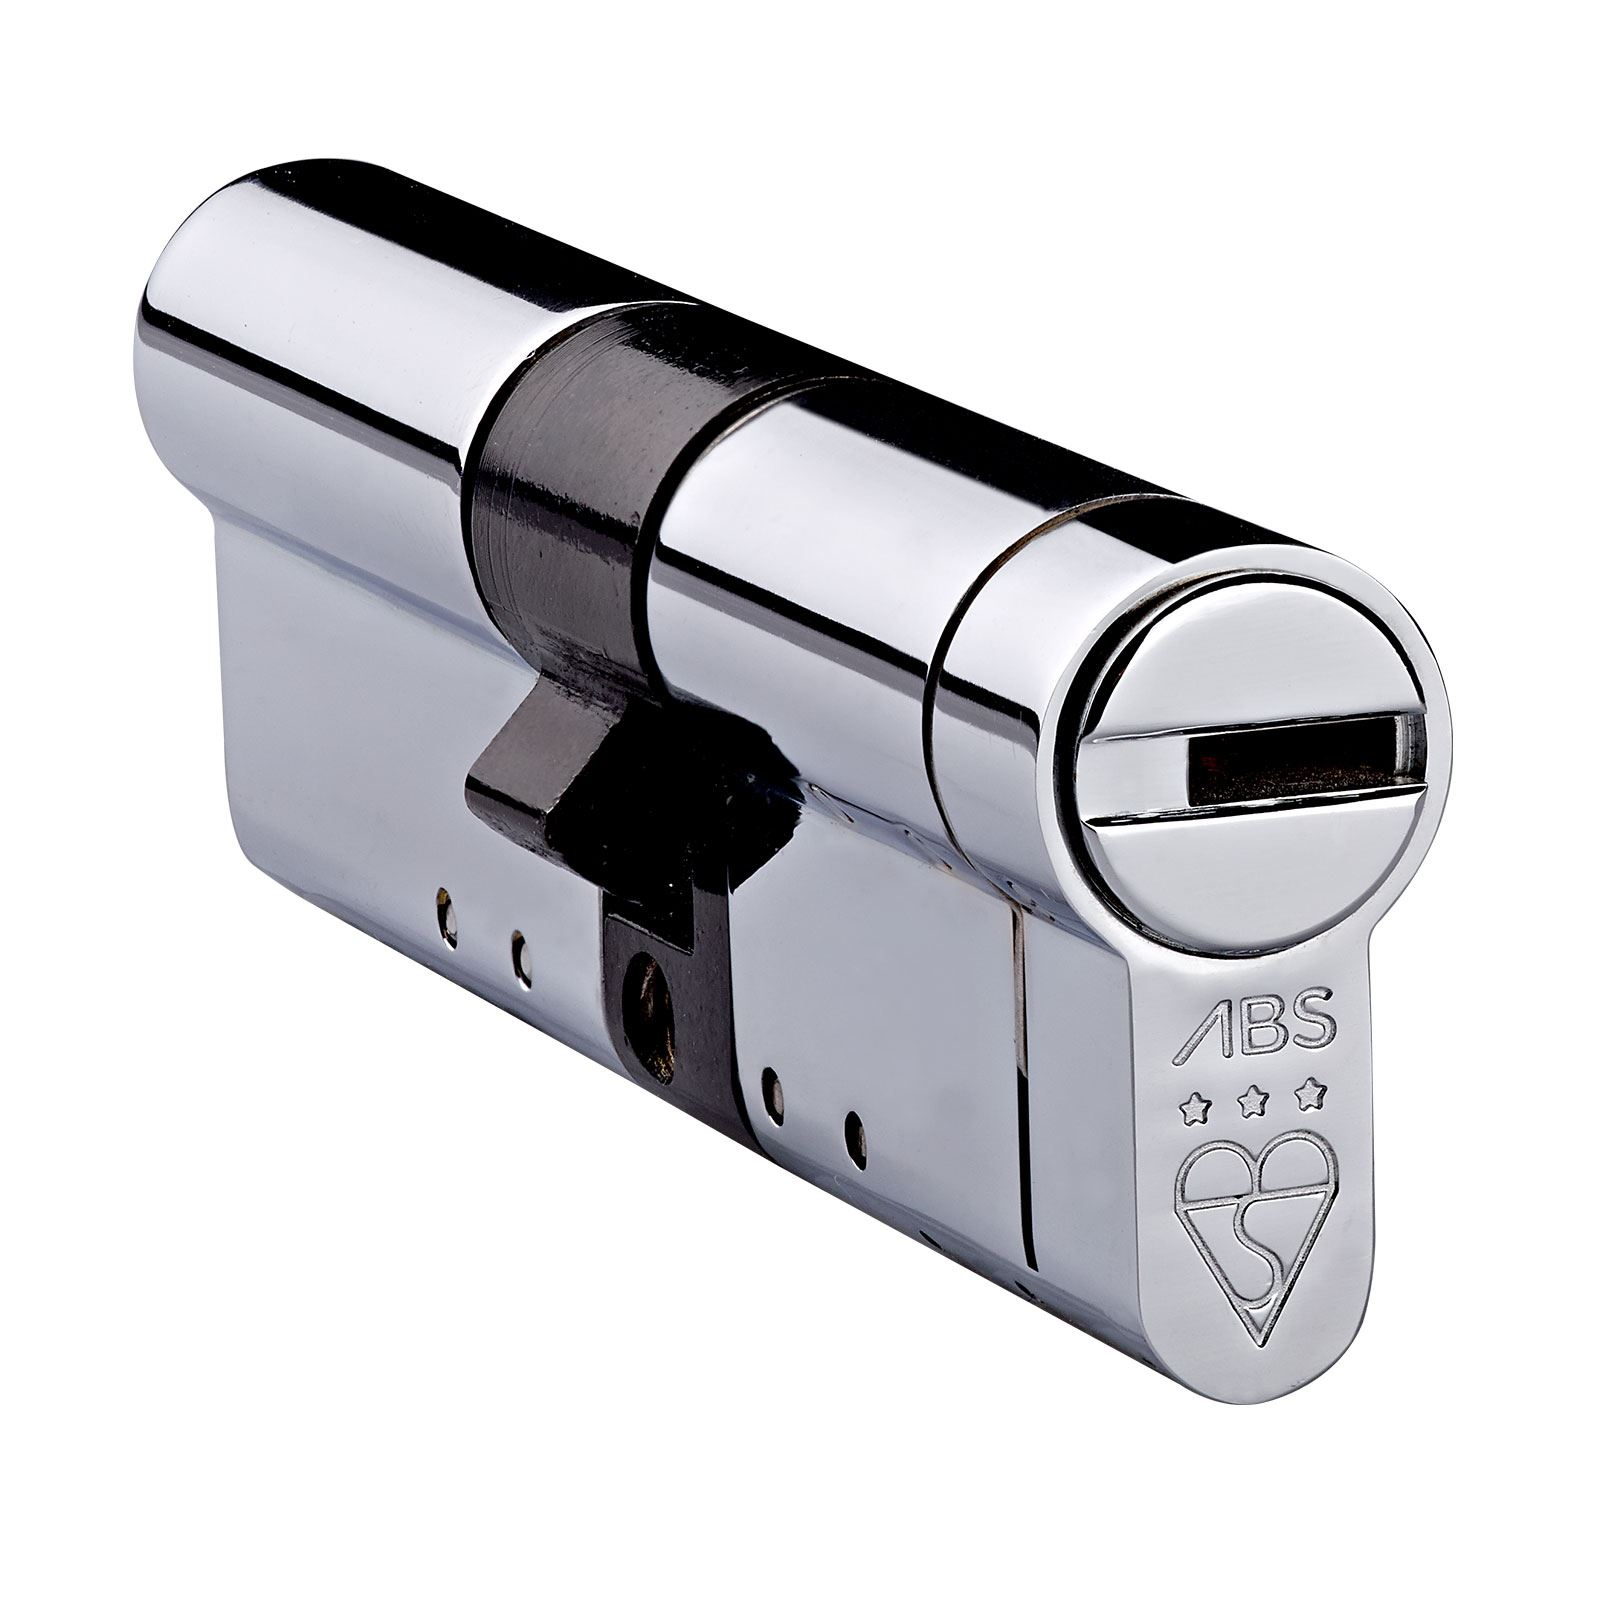 Avocet abs high security euro cylinder upvc door lock anti for 007 door locks